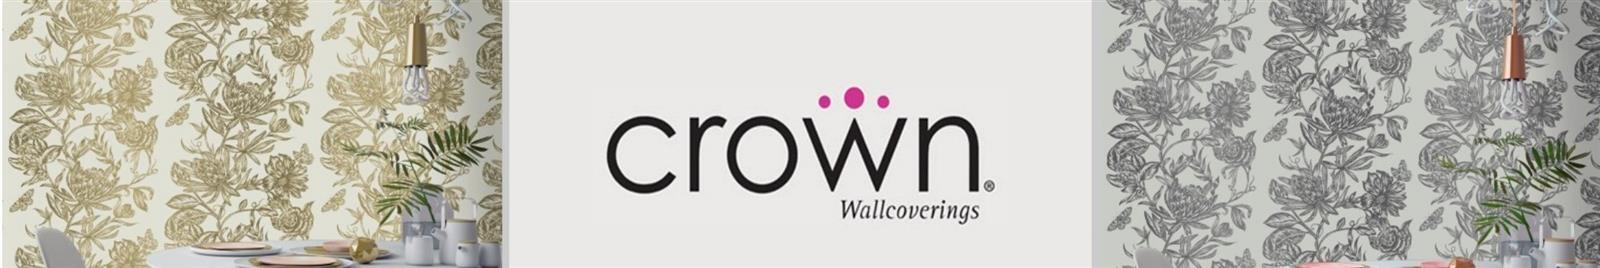 Crown Mayfair